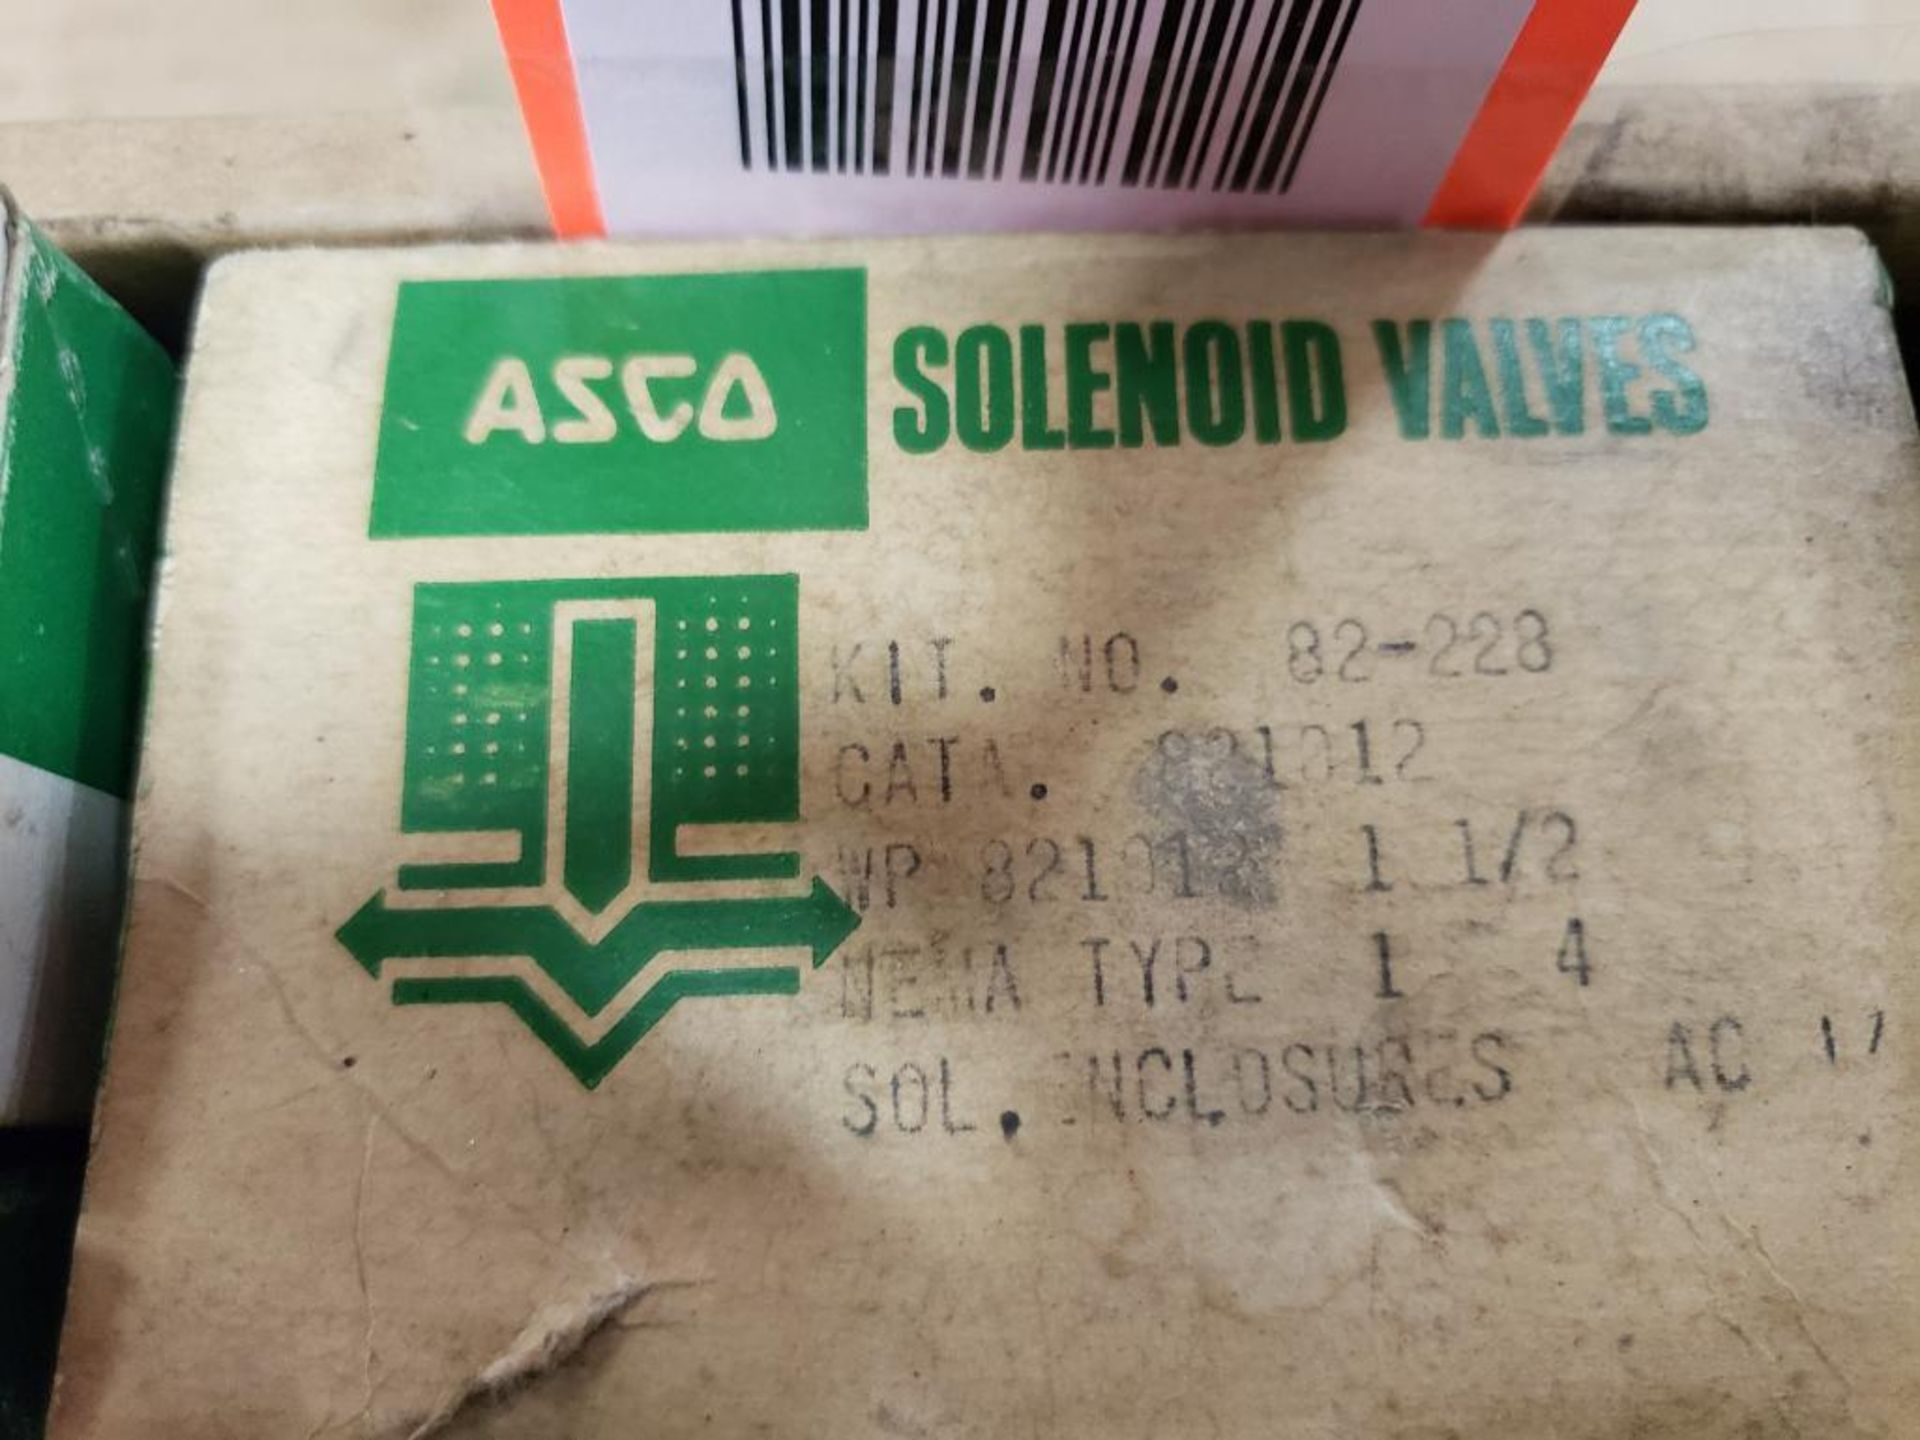 Assorted solenoid valves, and repair kits. Asco. - Image 5 of 15